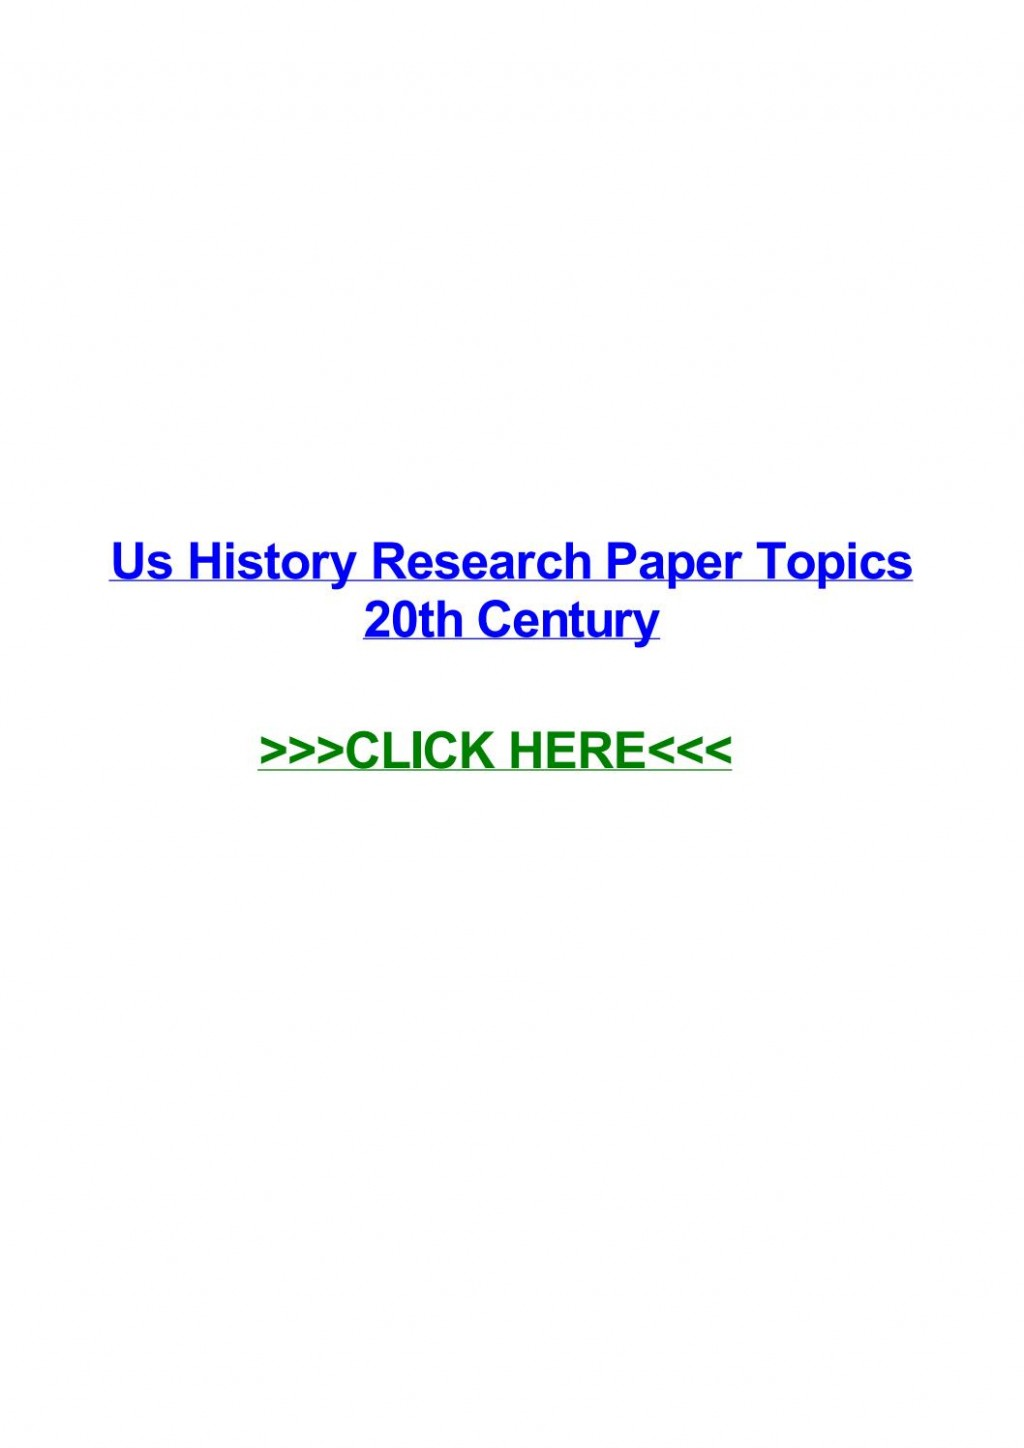 006 Page 1 Research Paper History Topics 20th Stupendous Century Art World Large